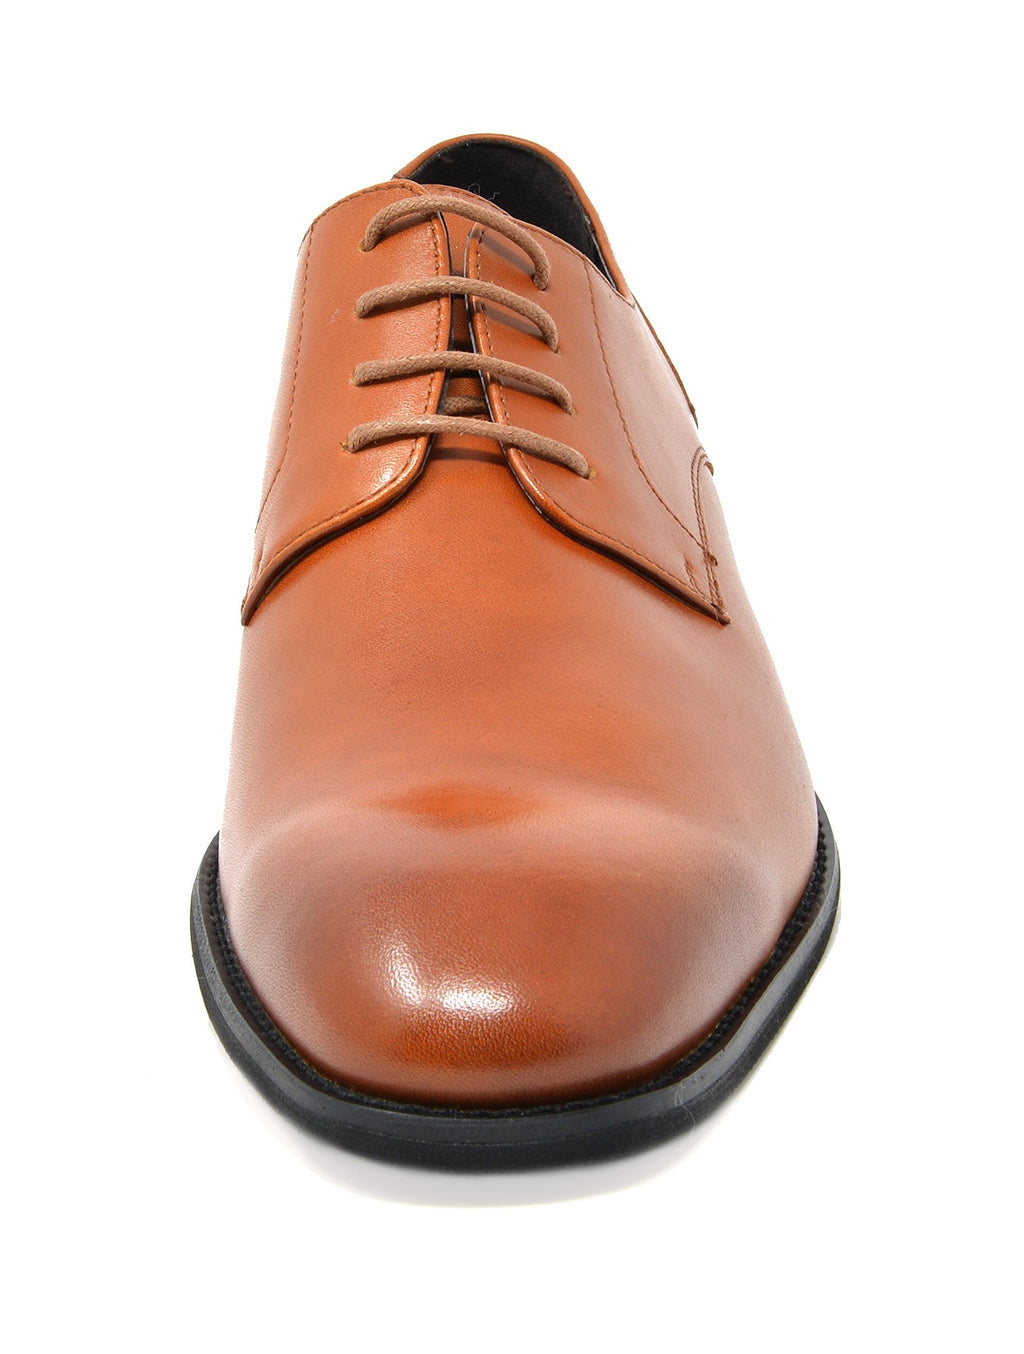 Men's Brown Dress Shoes Classic Oxfords Plain Toe Washington- Brown